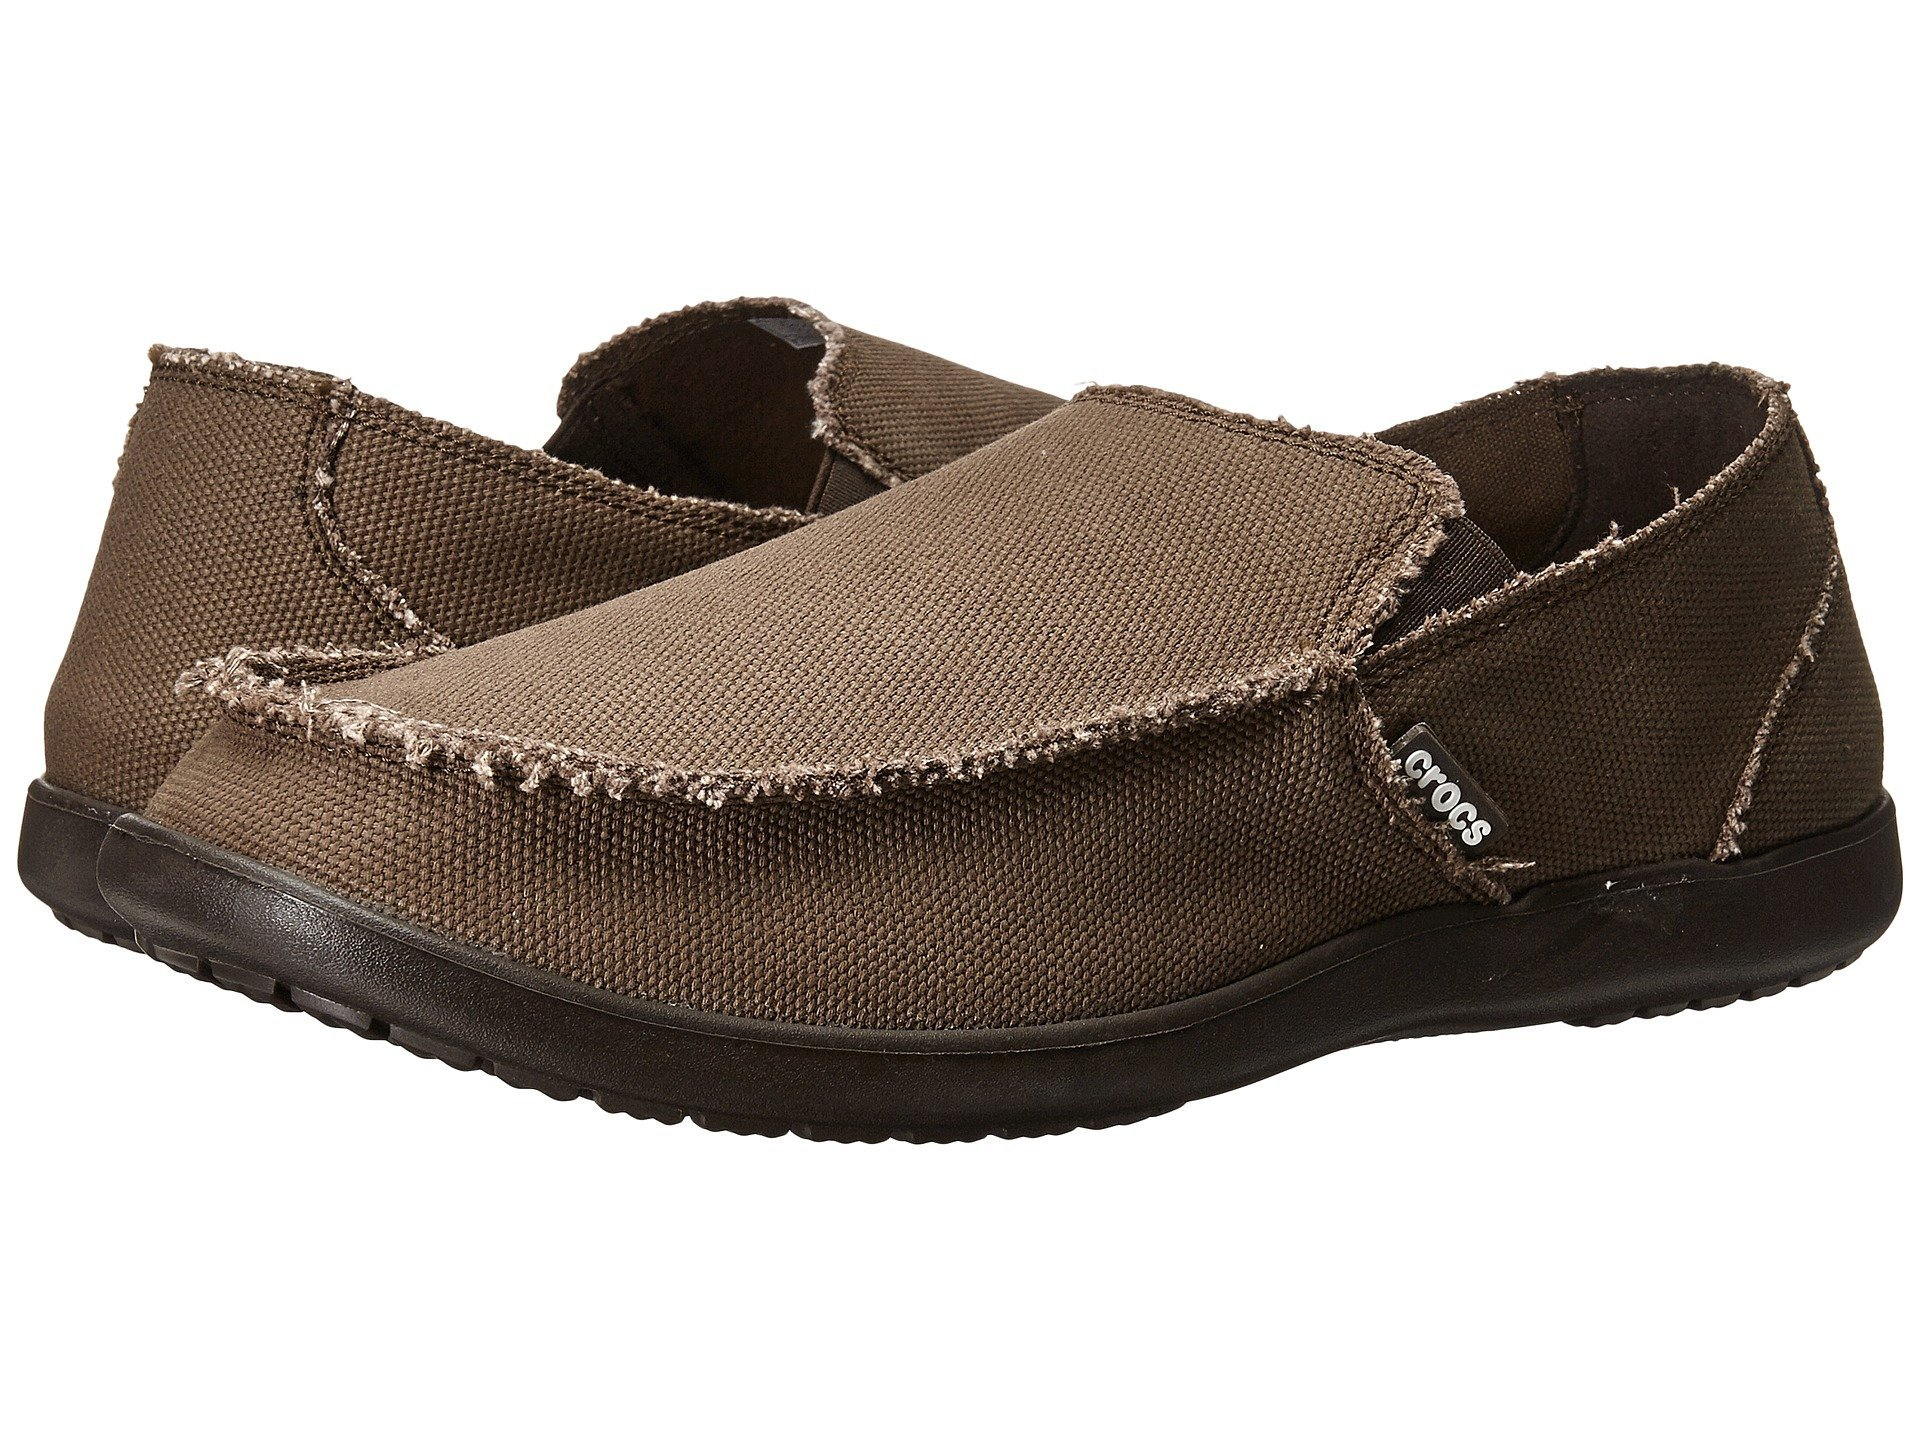 Crocs Men's Santa Cruz Slip-On Loafer,Espresso,8 (D) M US by Crocs